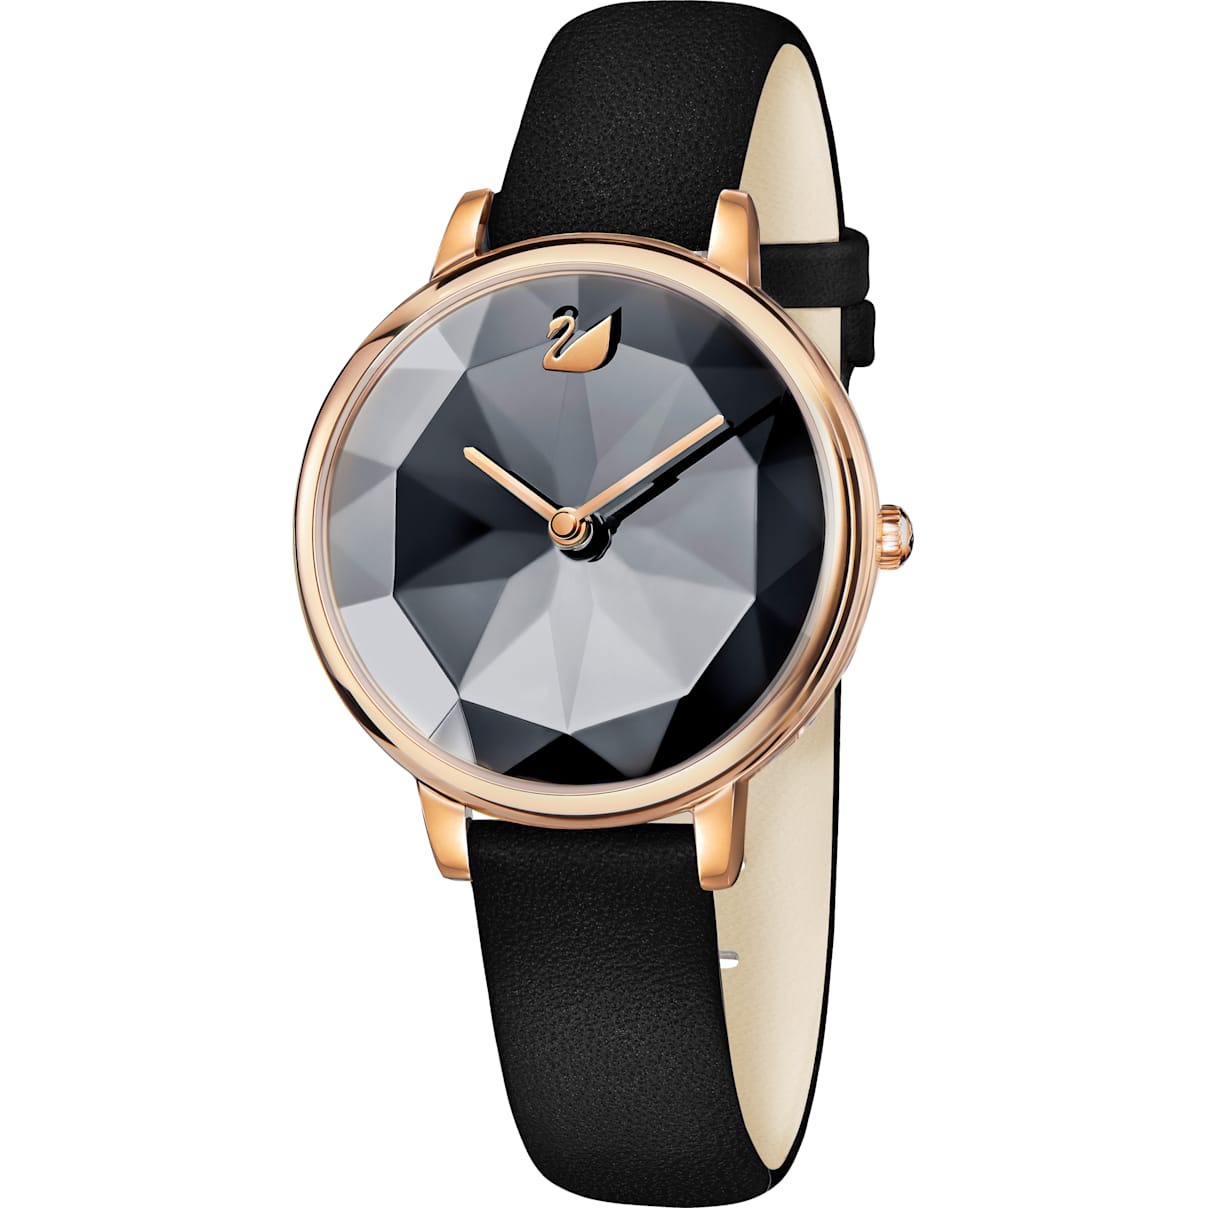 Swarovski Crystal Lake Watch, Leather strap, Black, Rose-gold tone PVD